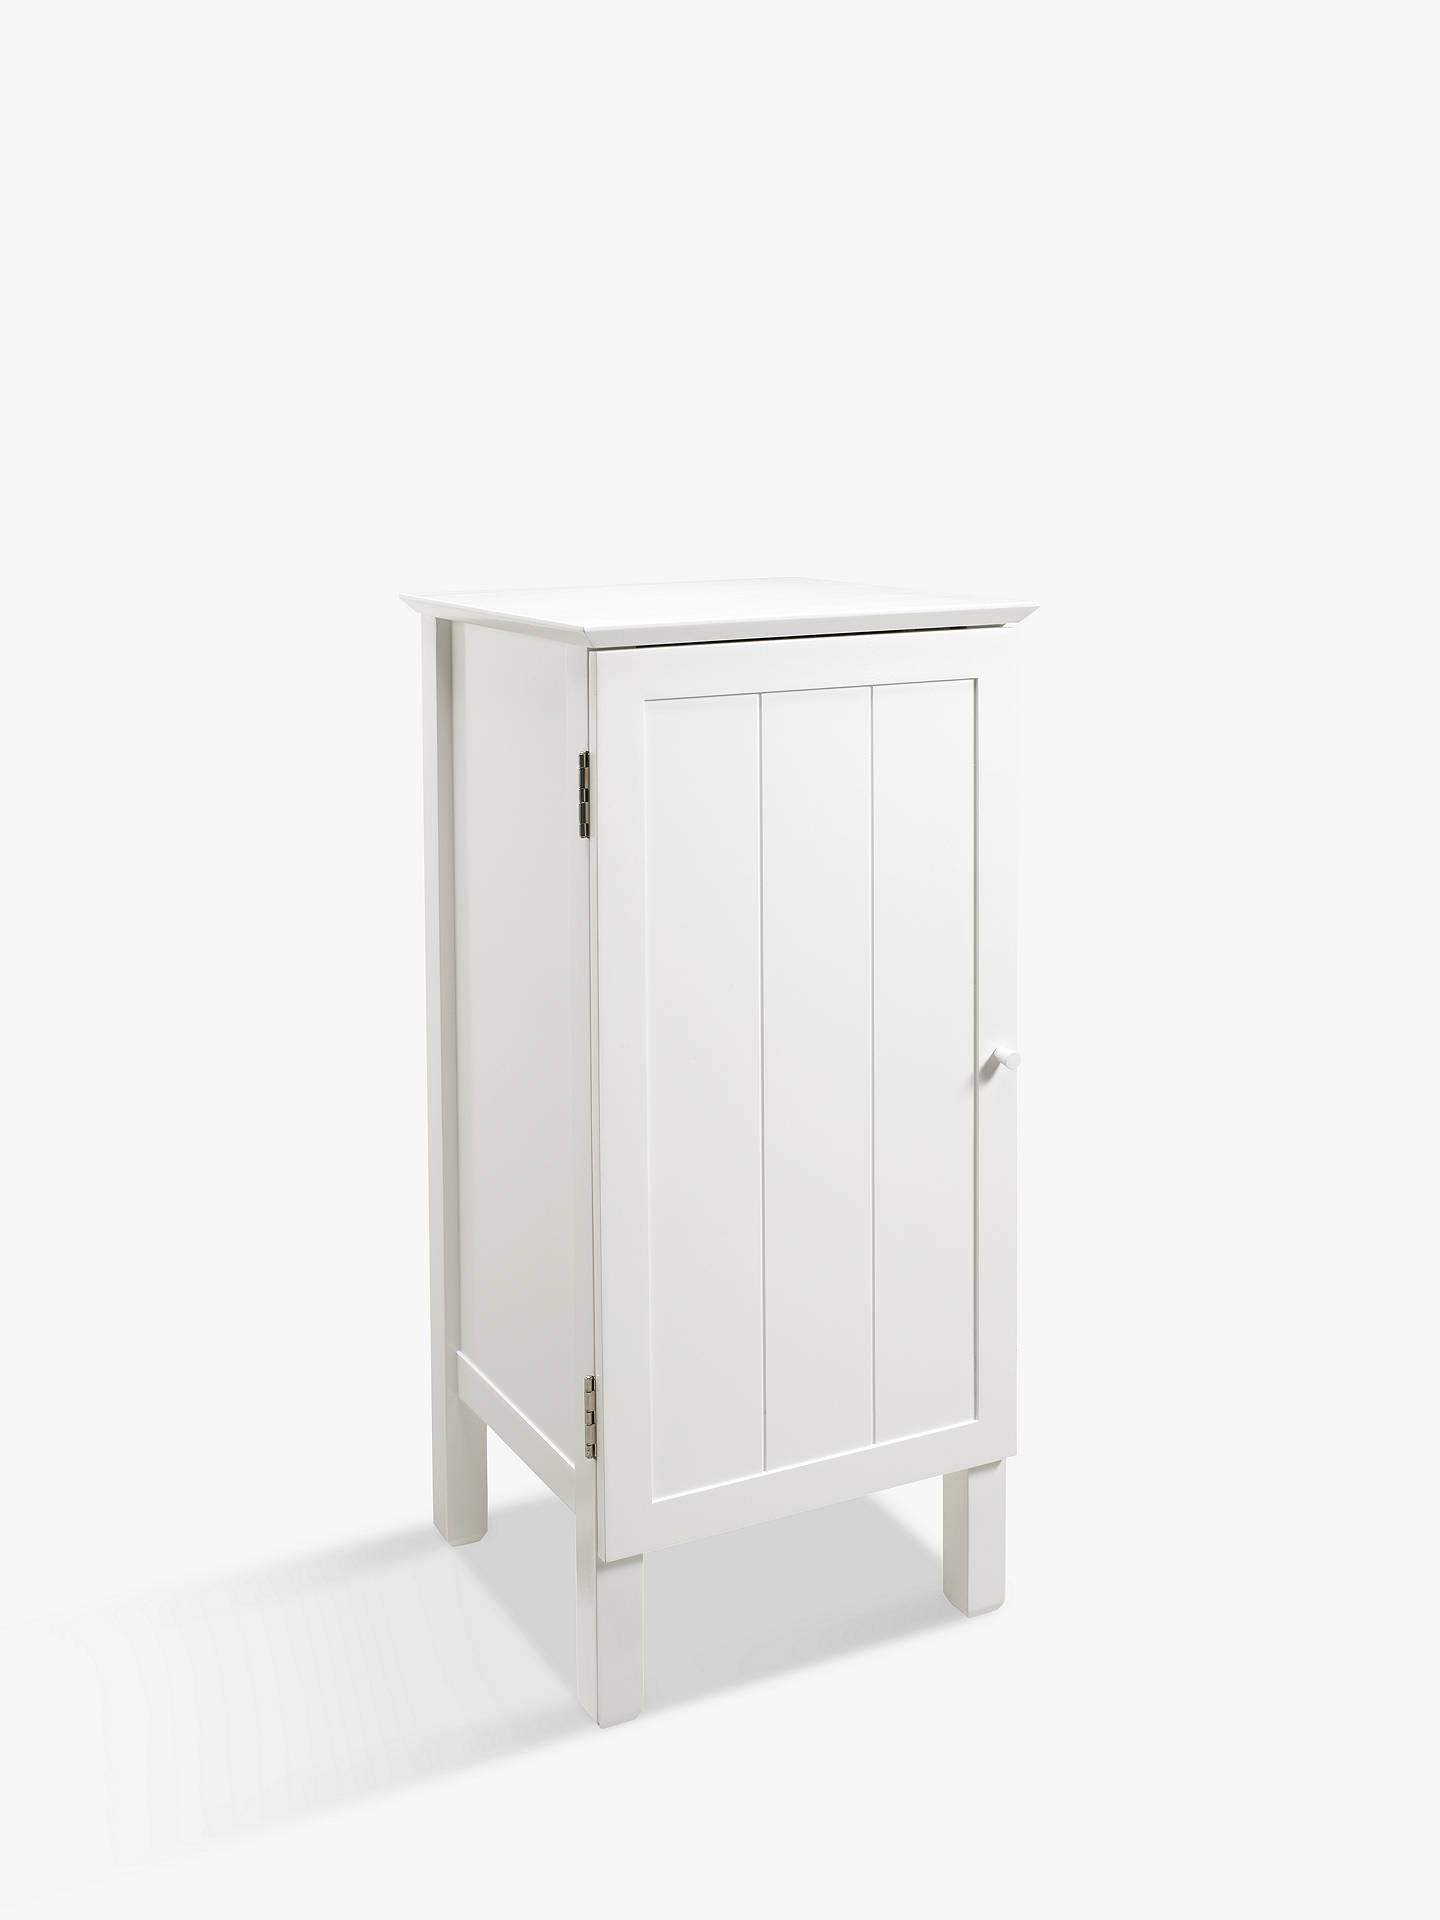 BuyJohn Lewis & Partners St Ives Single Towel Cupboard Online at johnlewis.com